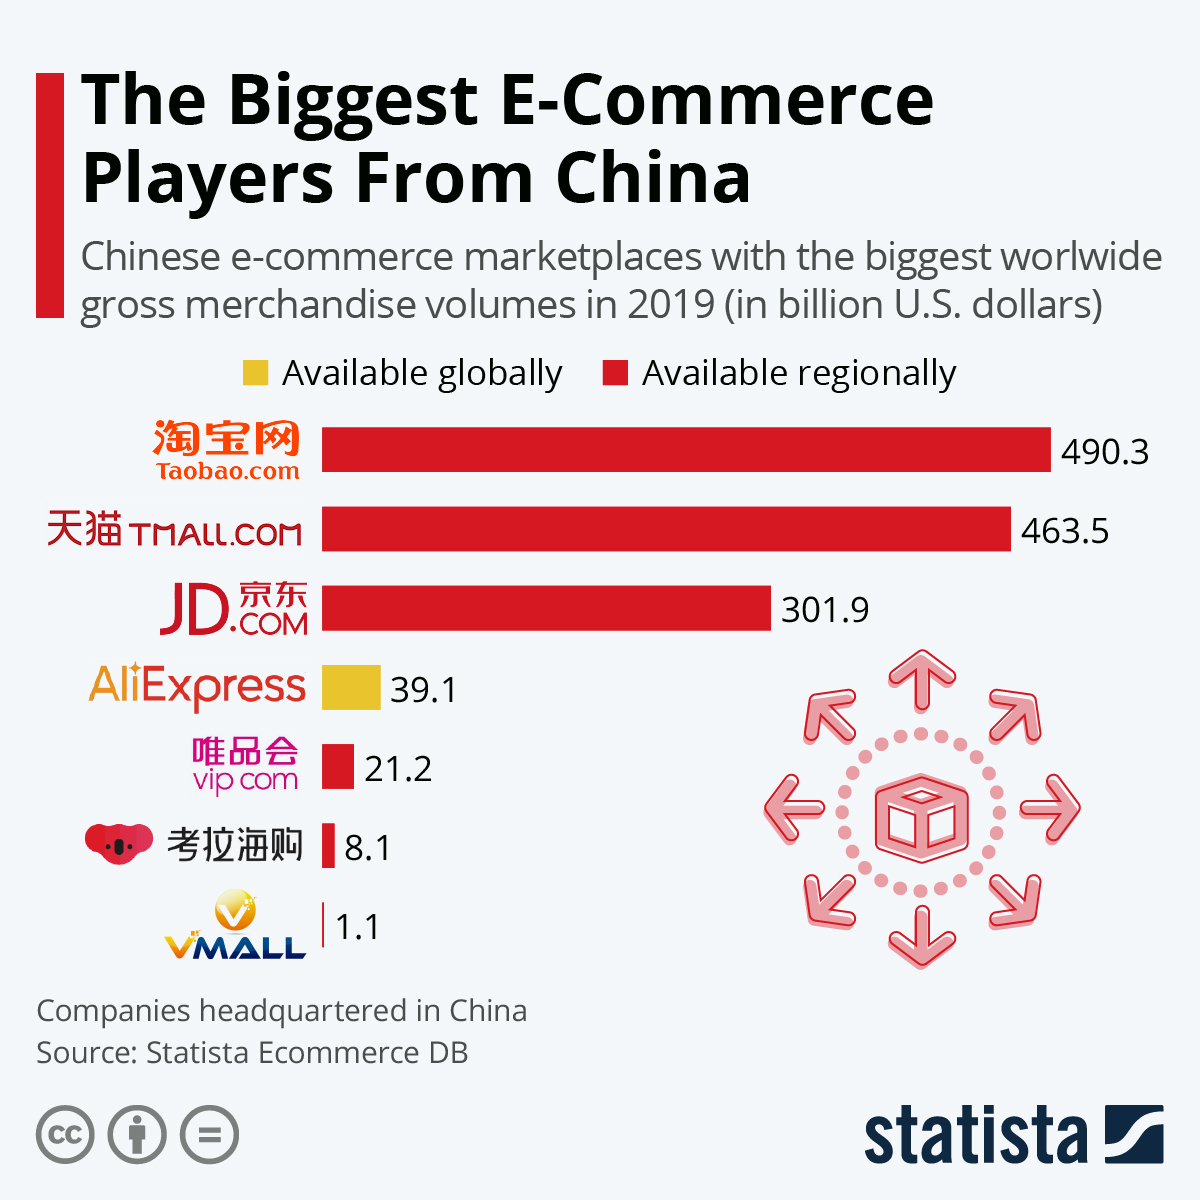 What are the biggest e-commerce platforms in China?